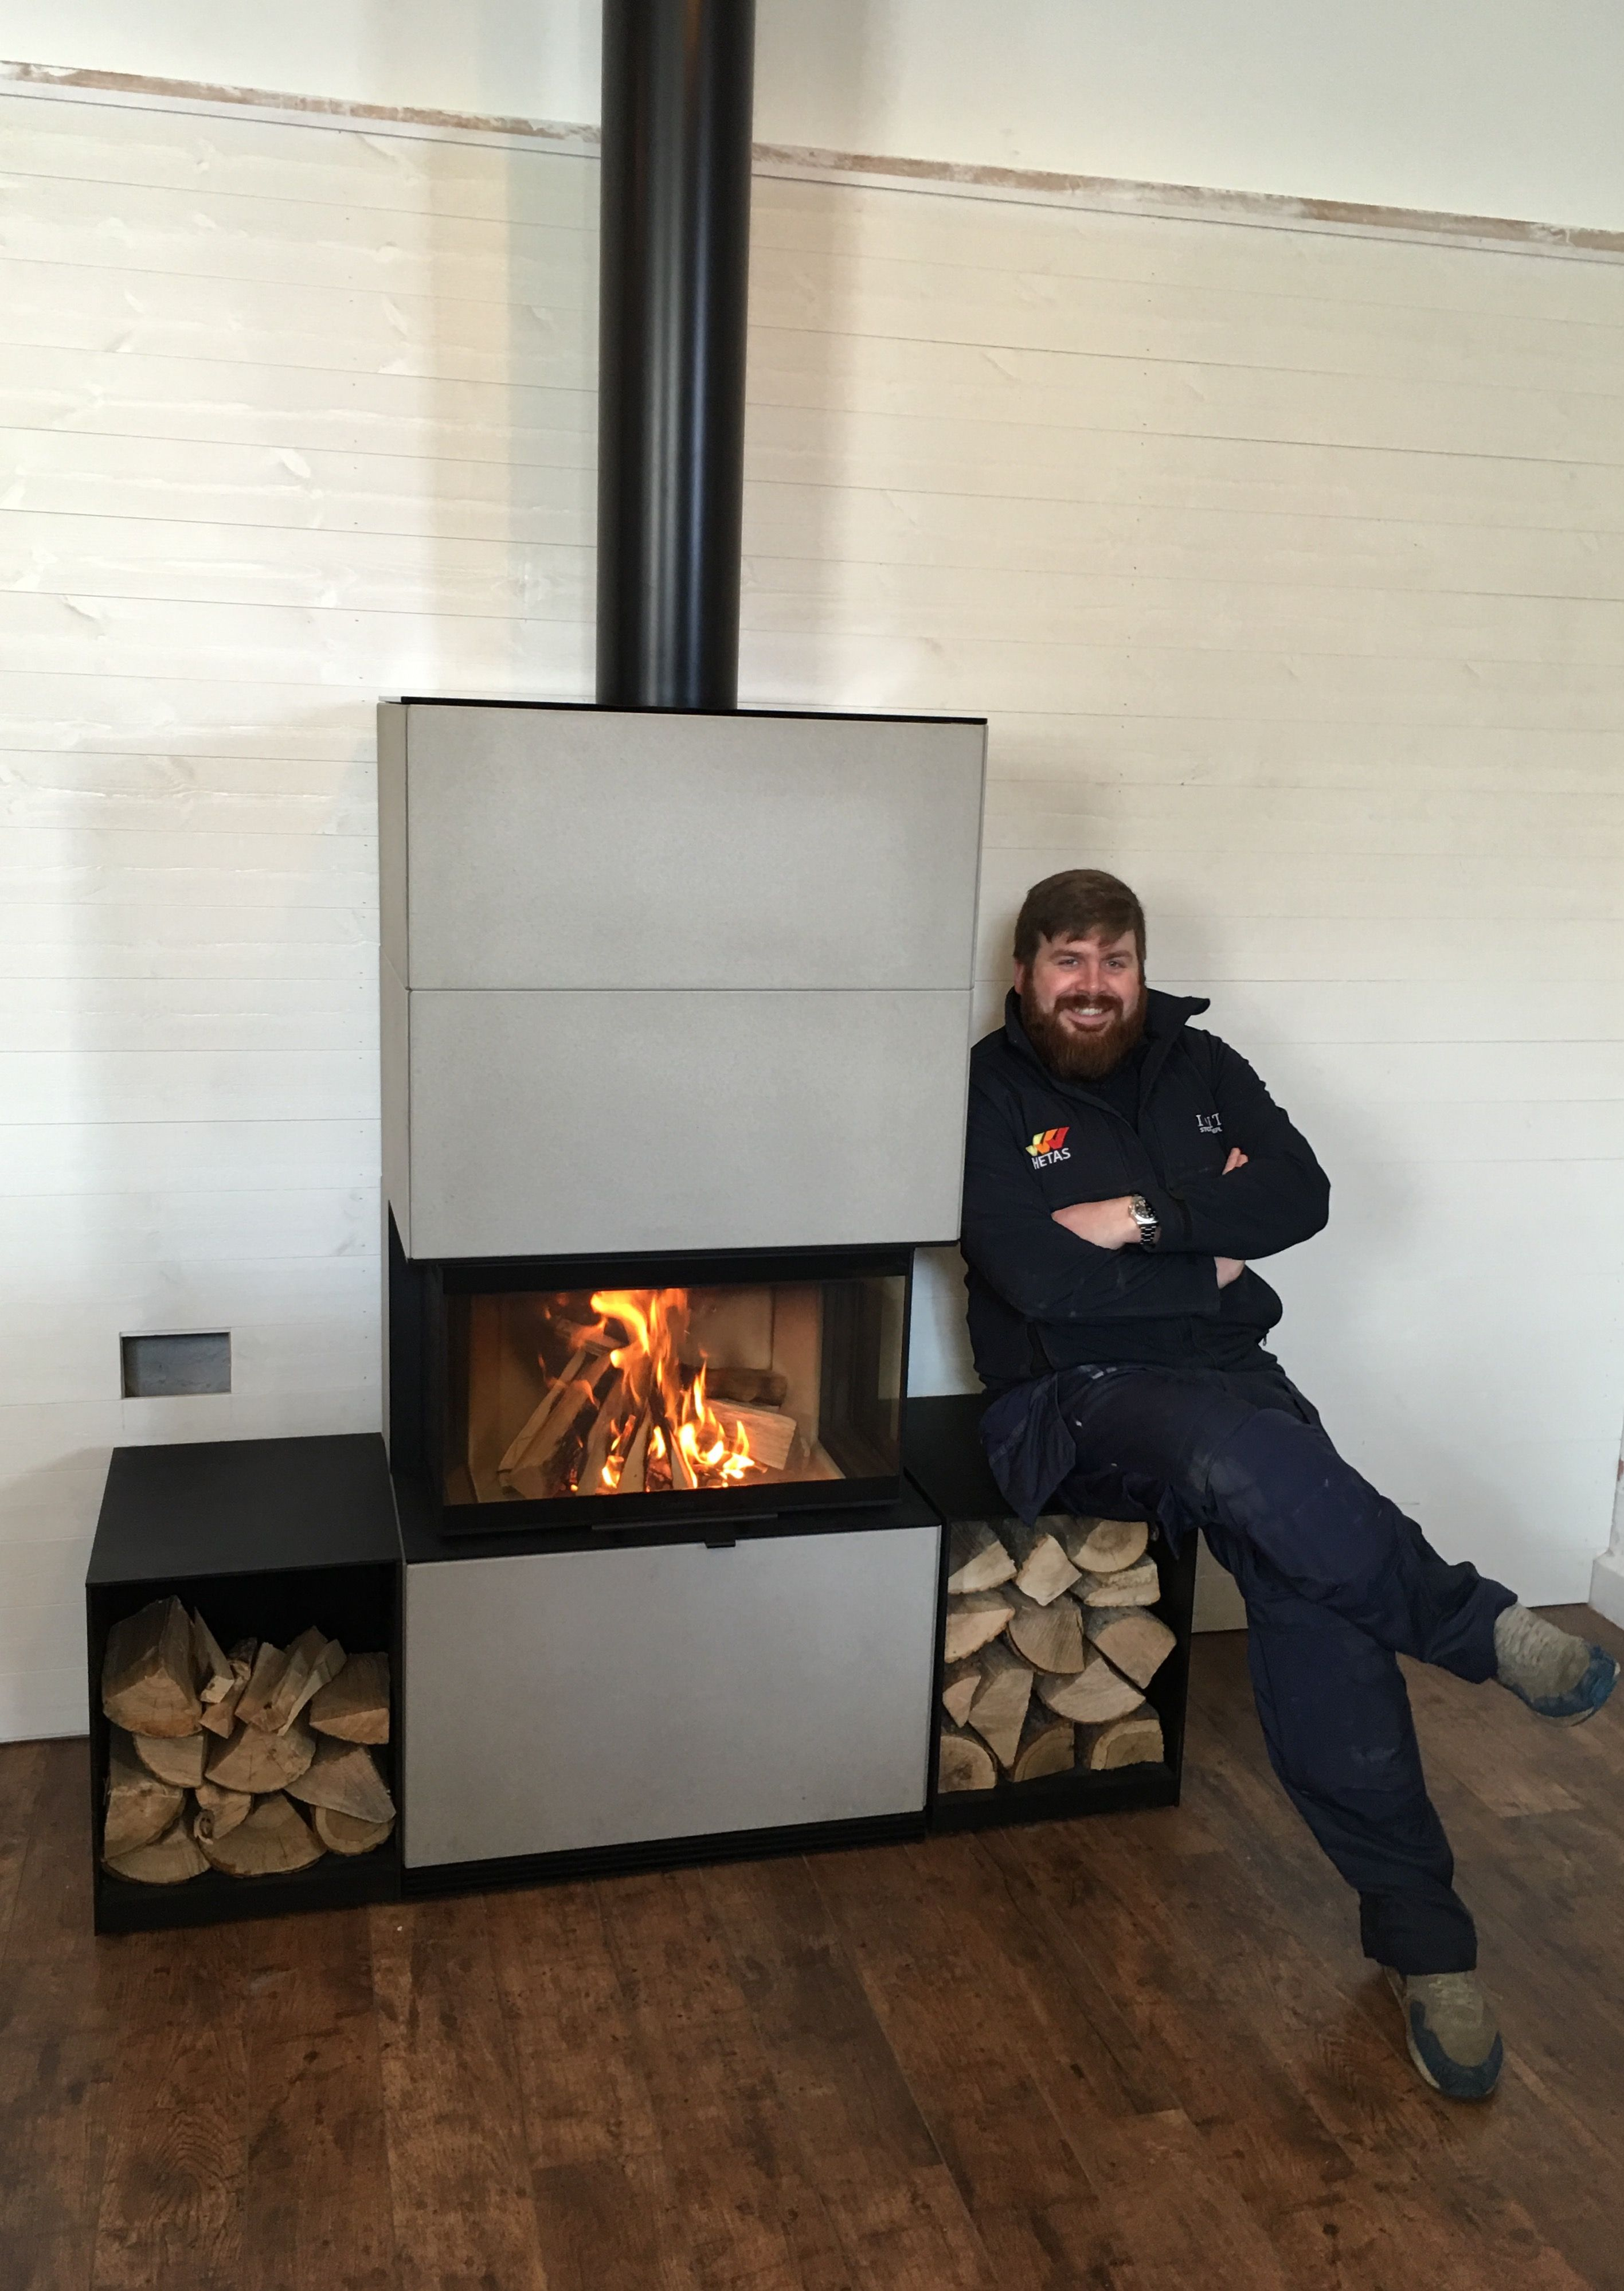 Contura Ofen Contura I51a Woodburning Stove Installed By Ignite Stoves